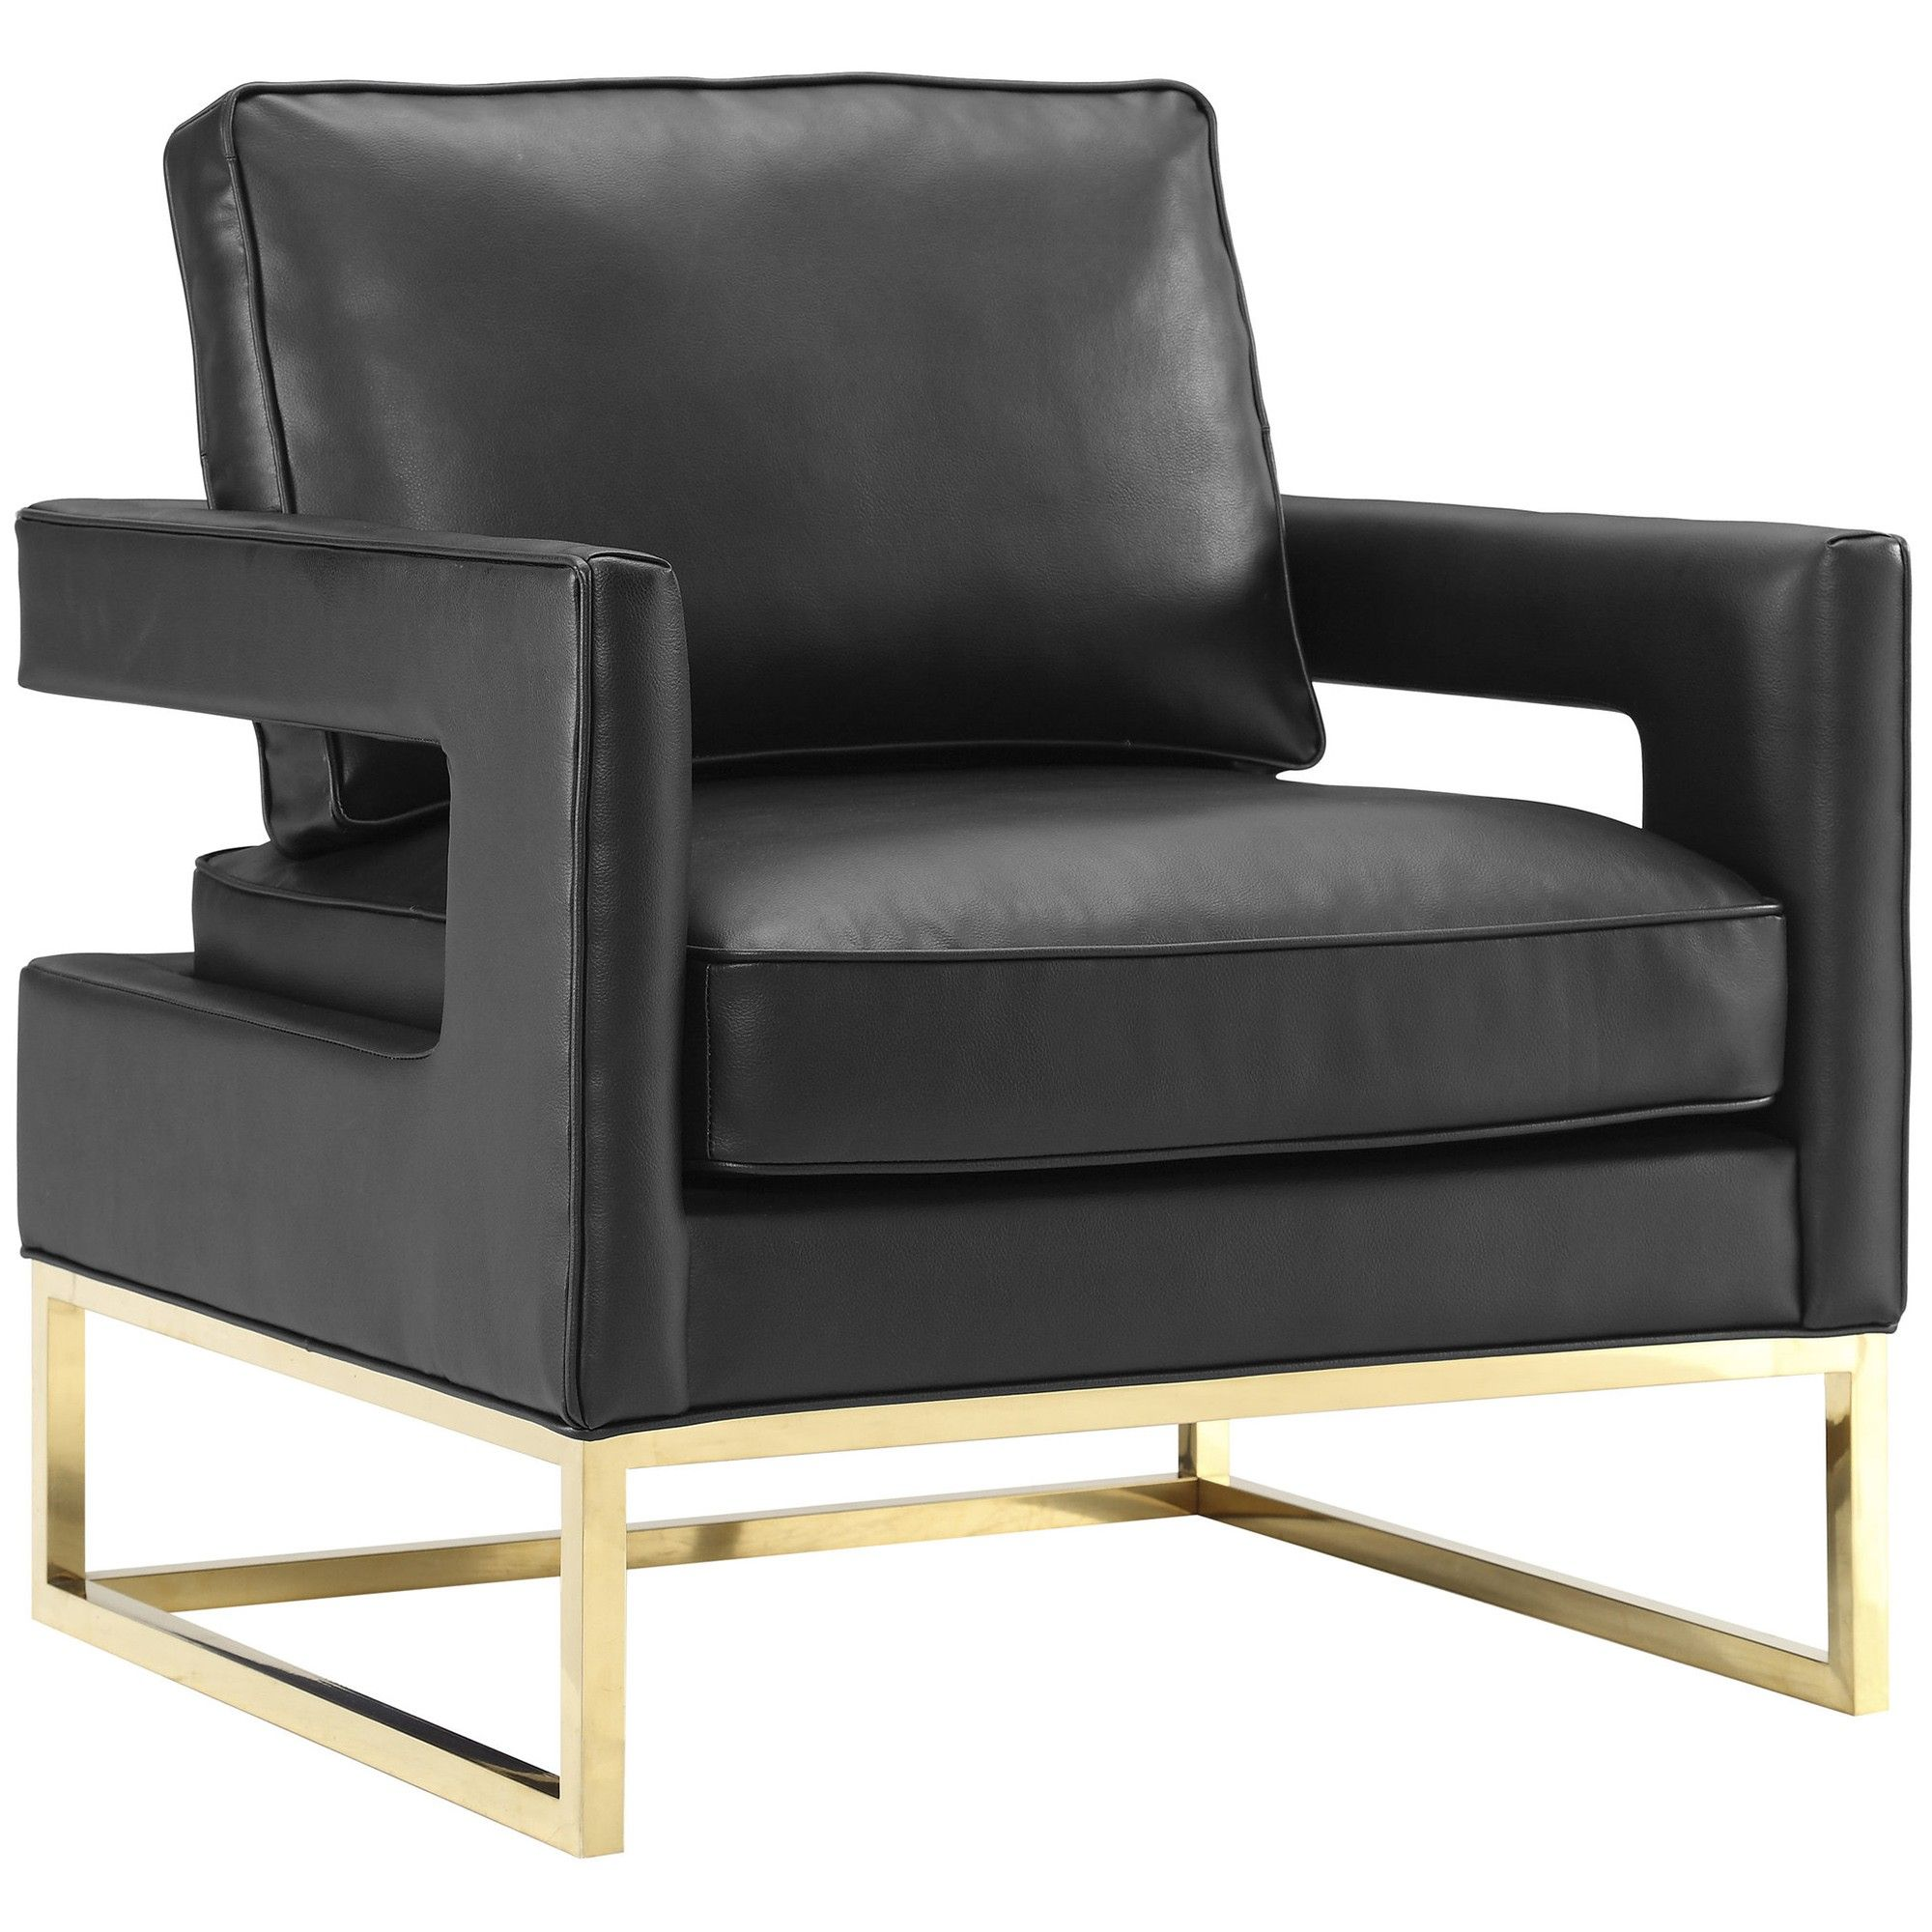 Avery Chair Black Office In 2019 Black Leather Chair